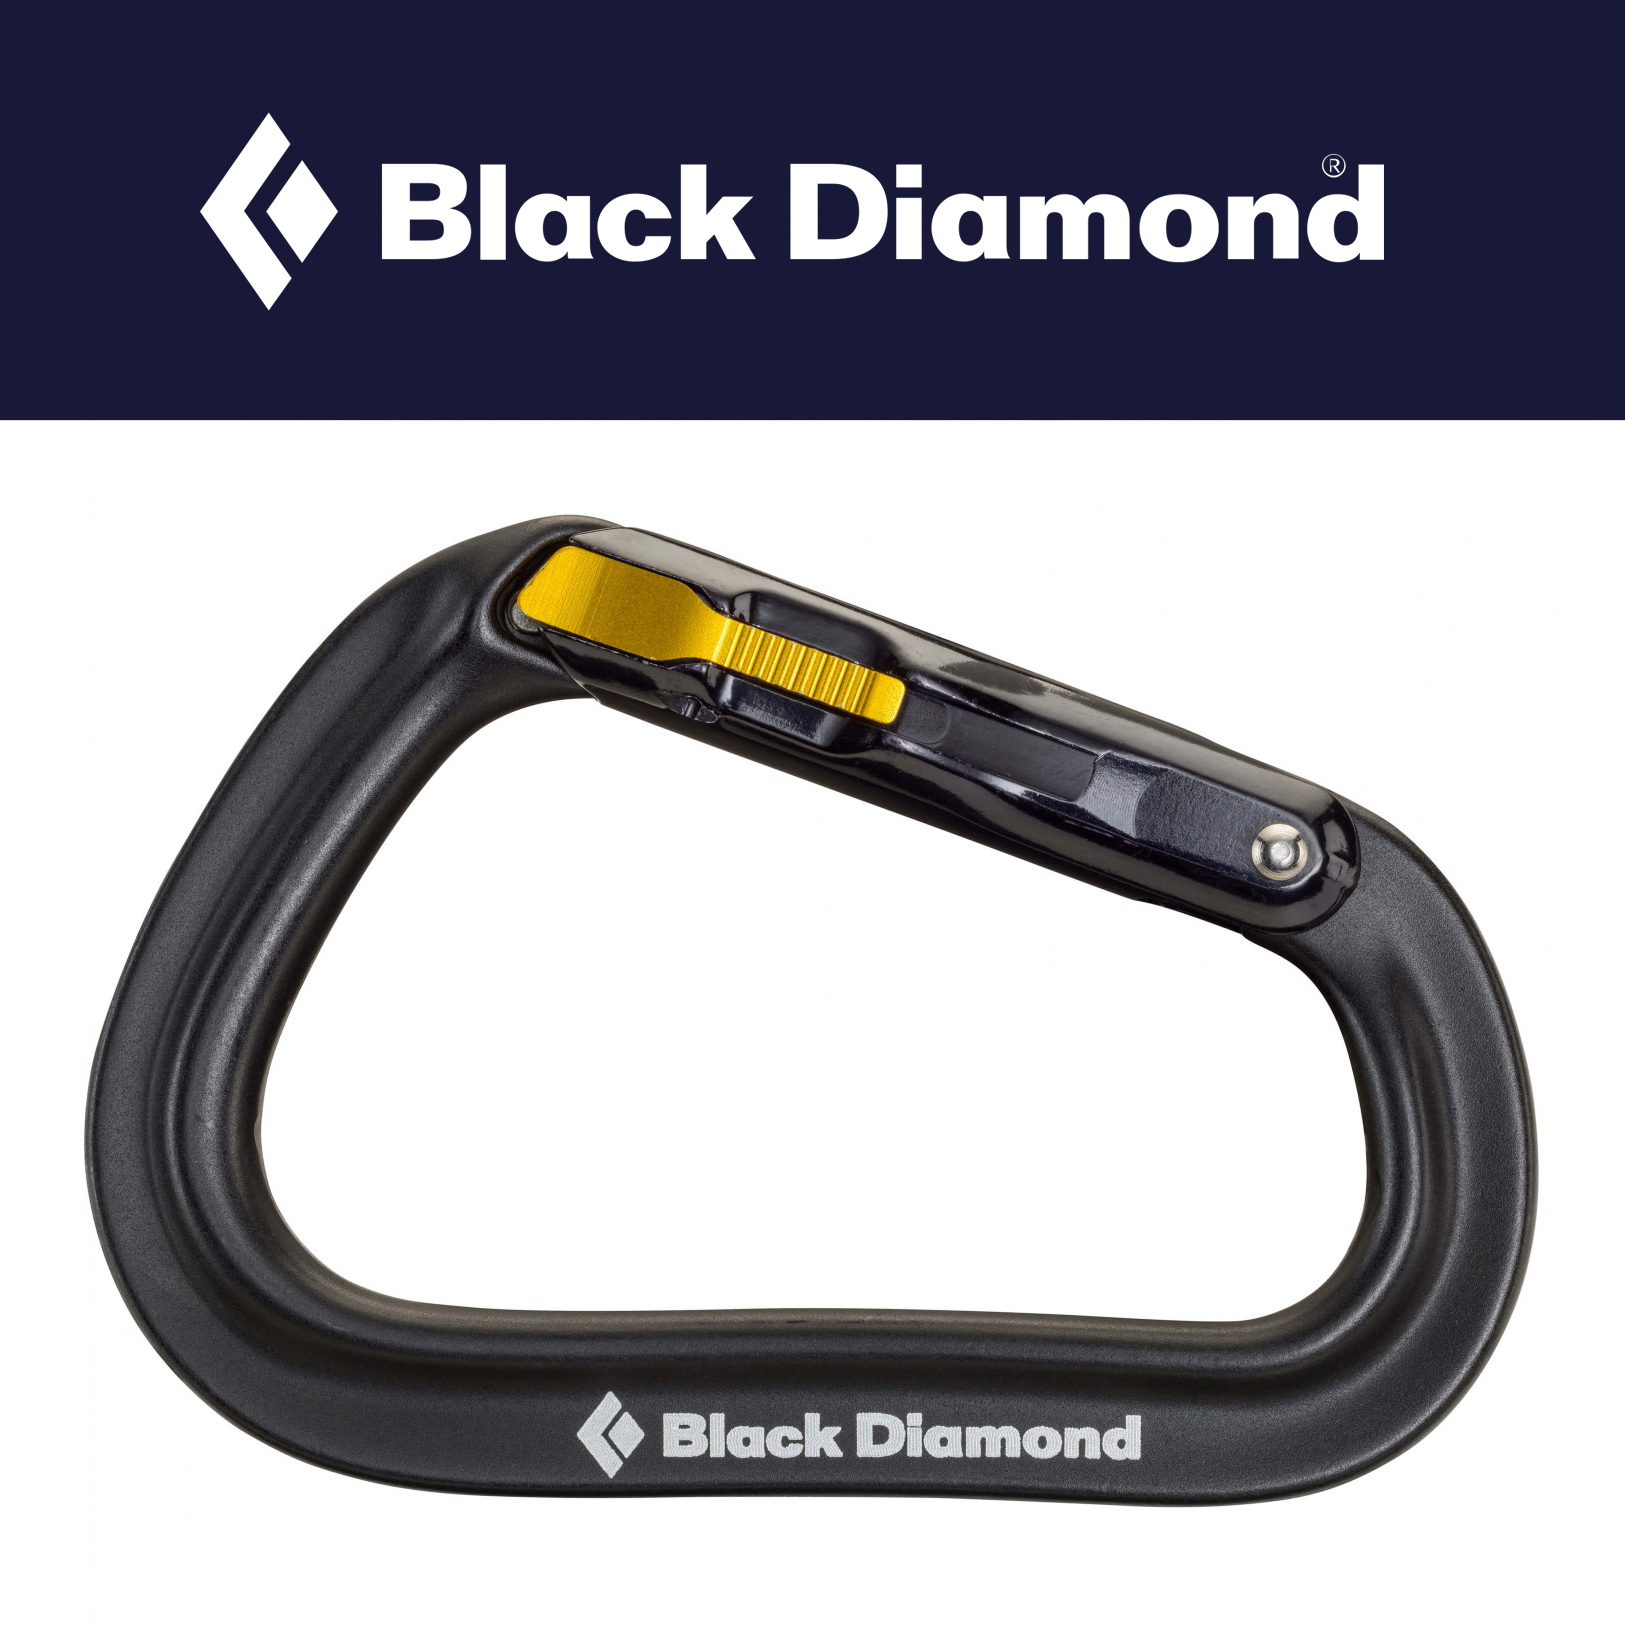 blackdiamond_overview.jpg